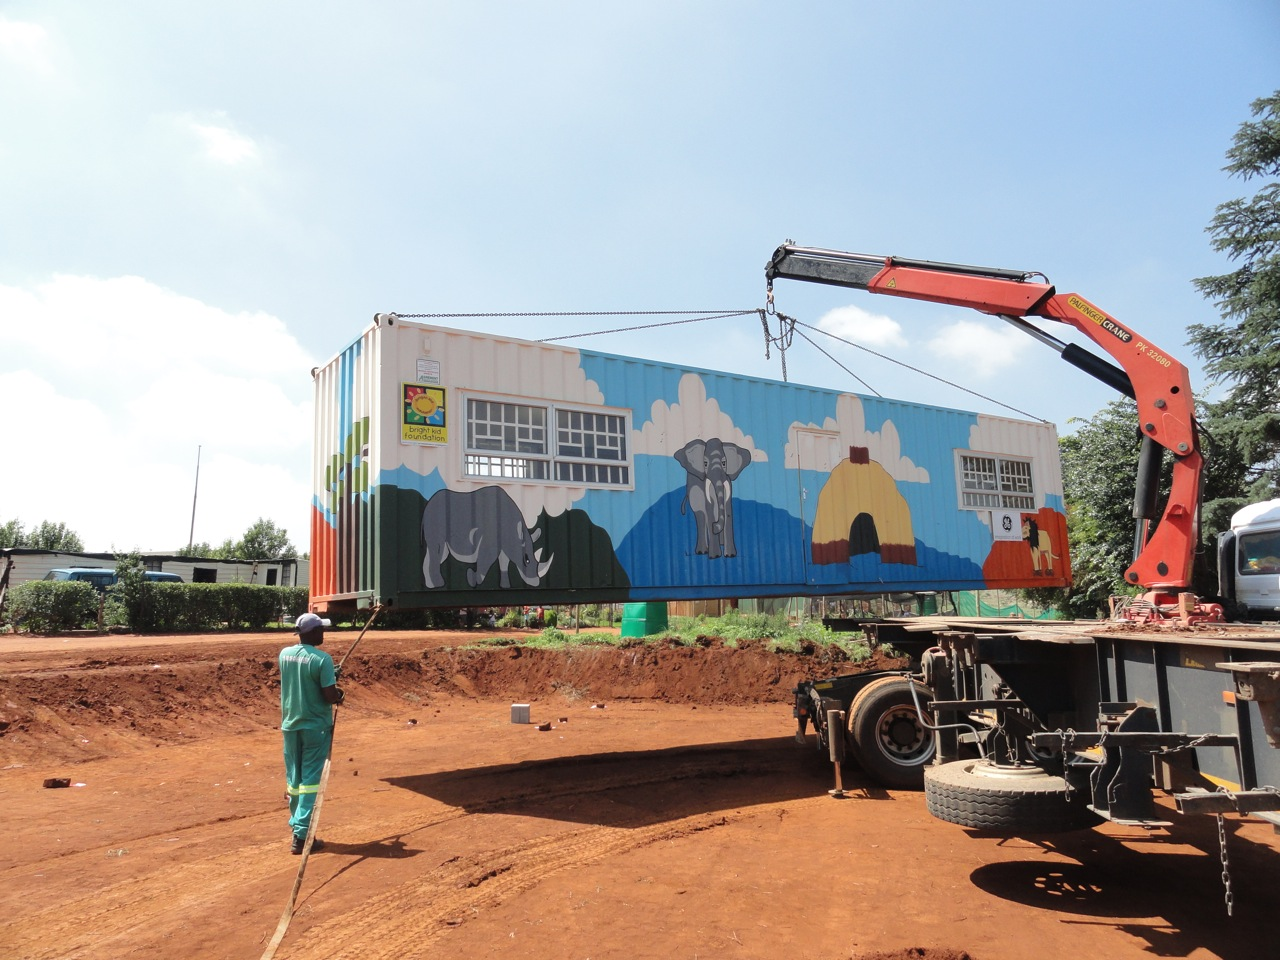 General Electric Early Childhood Development Centre for the Cradle of Mankind